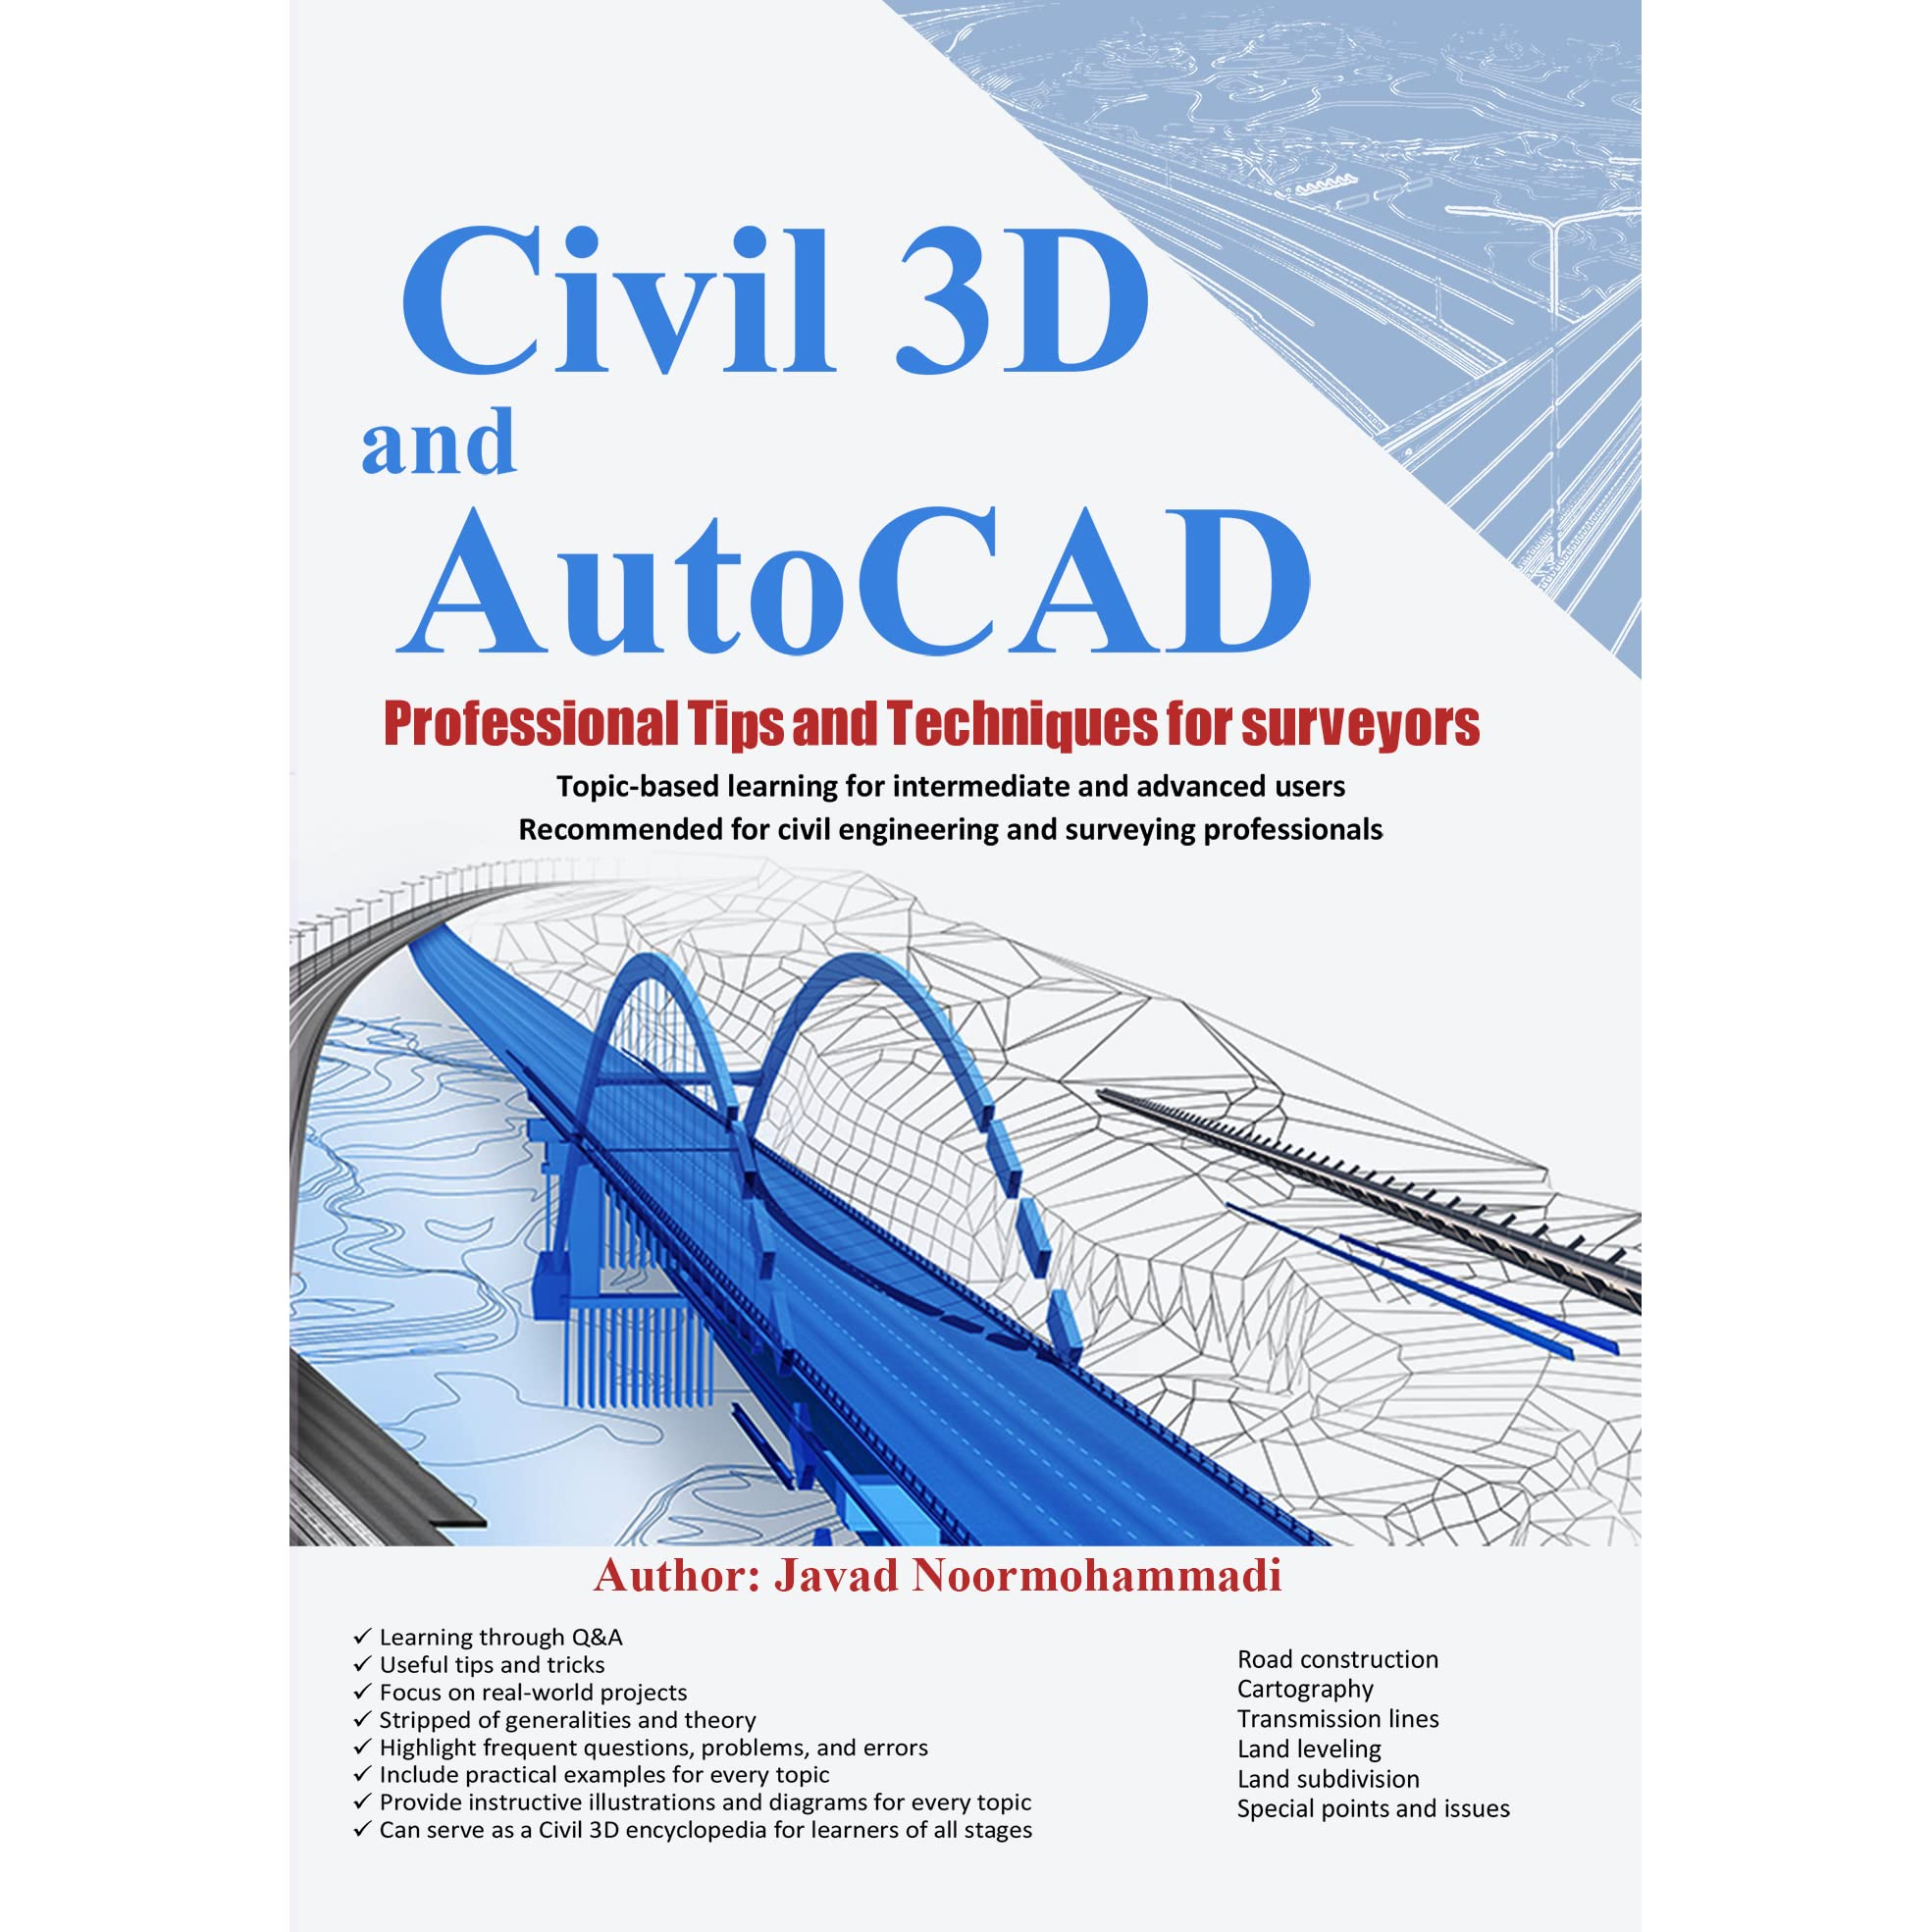 Civil 3D and AutoCAD Professional Tips and Techniques for